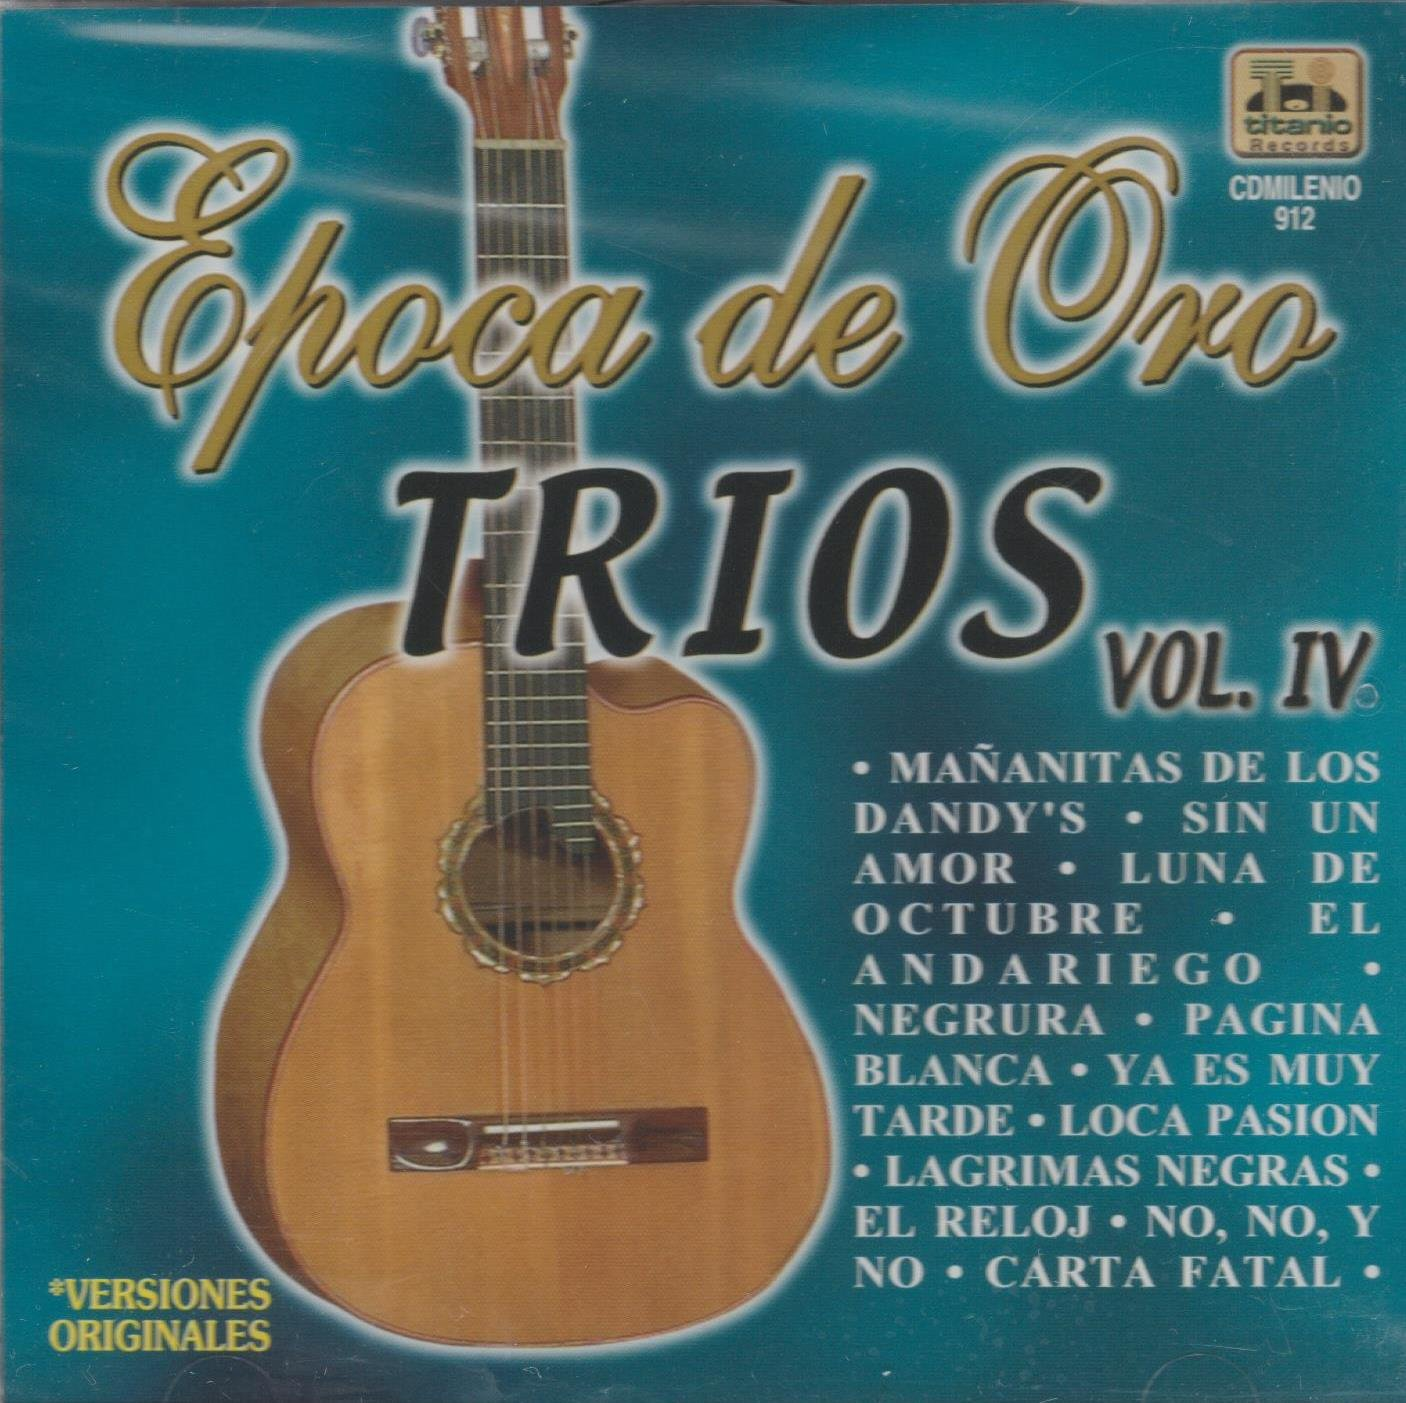 Vrios, Titanio Records CD 2003 - Epoca De Oro Trios Vol IV - Amazon.com Music